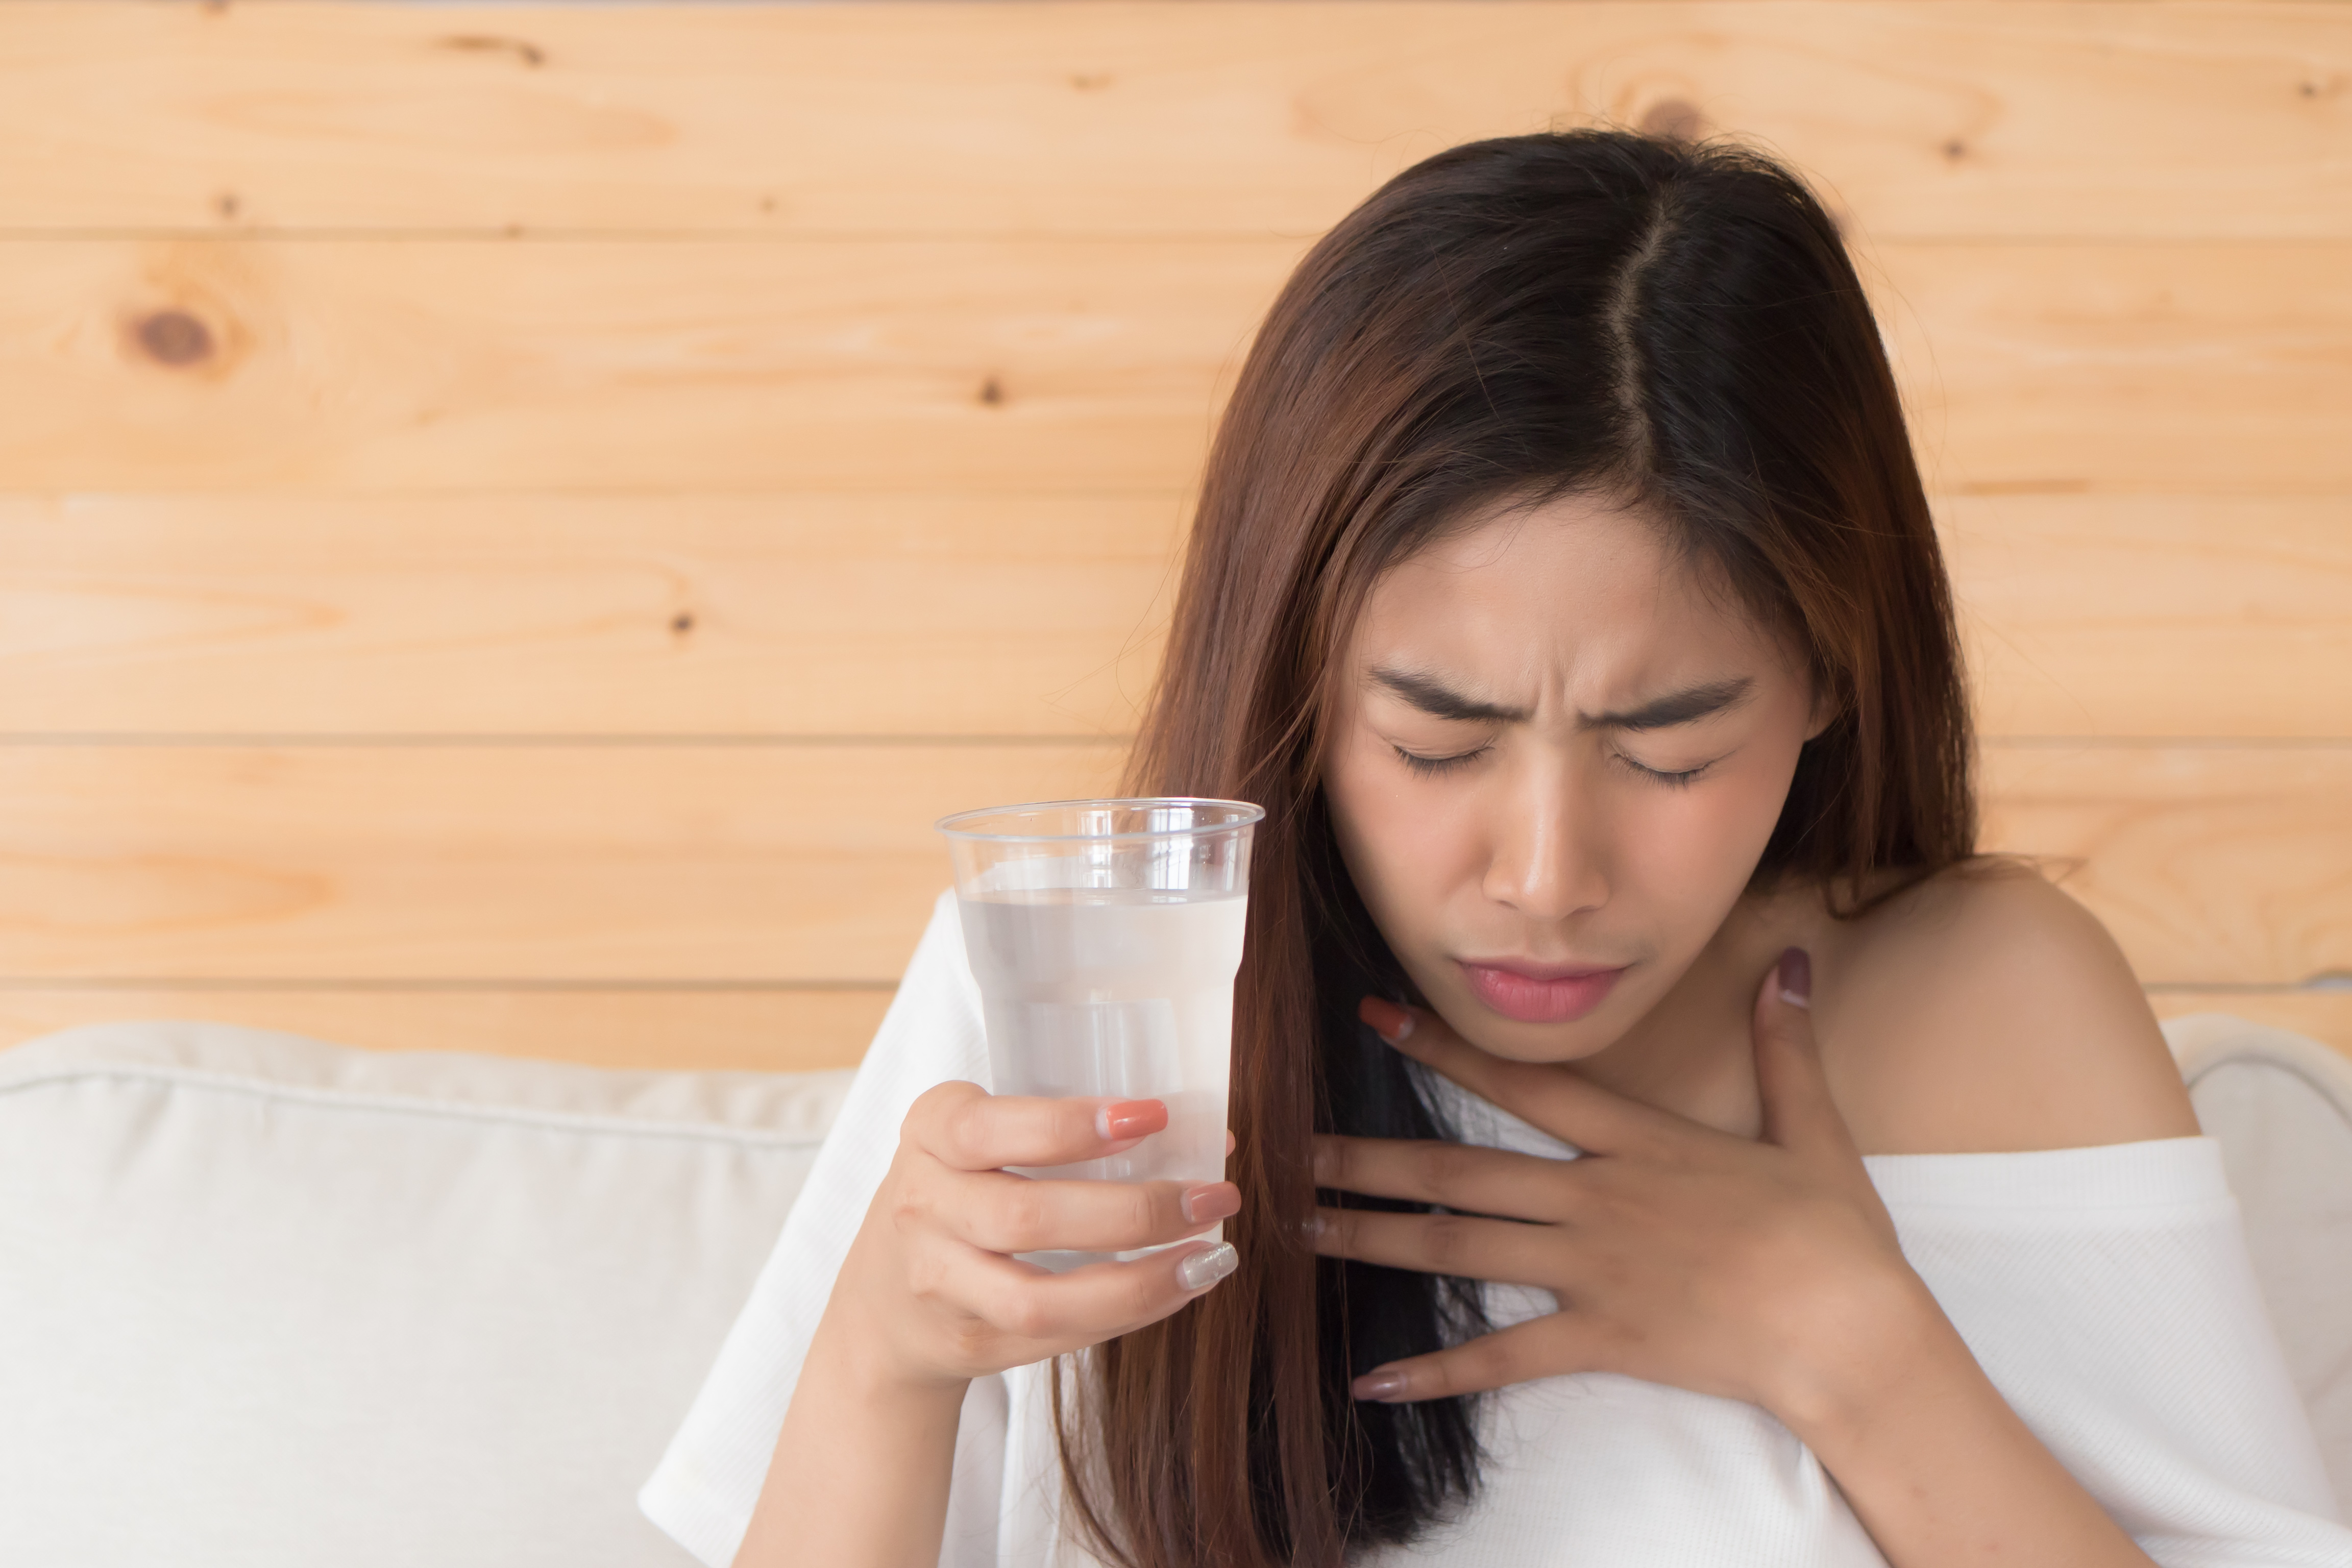 Woman choking from glass of water